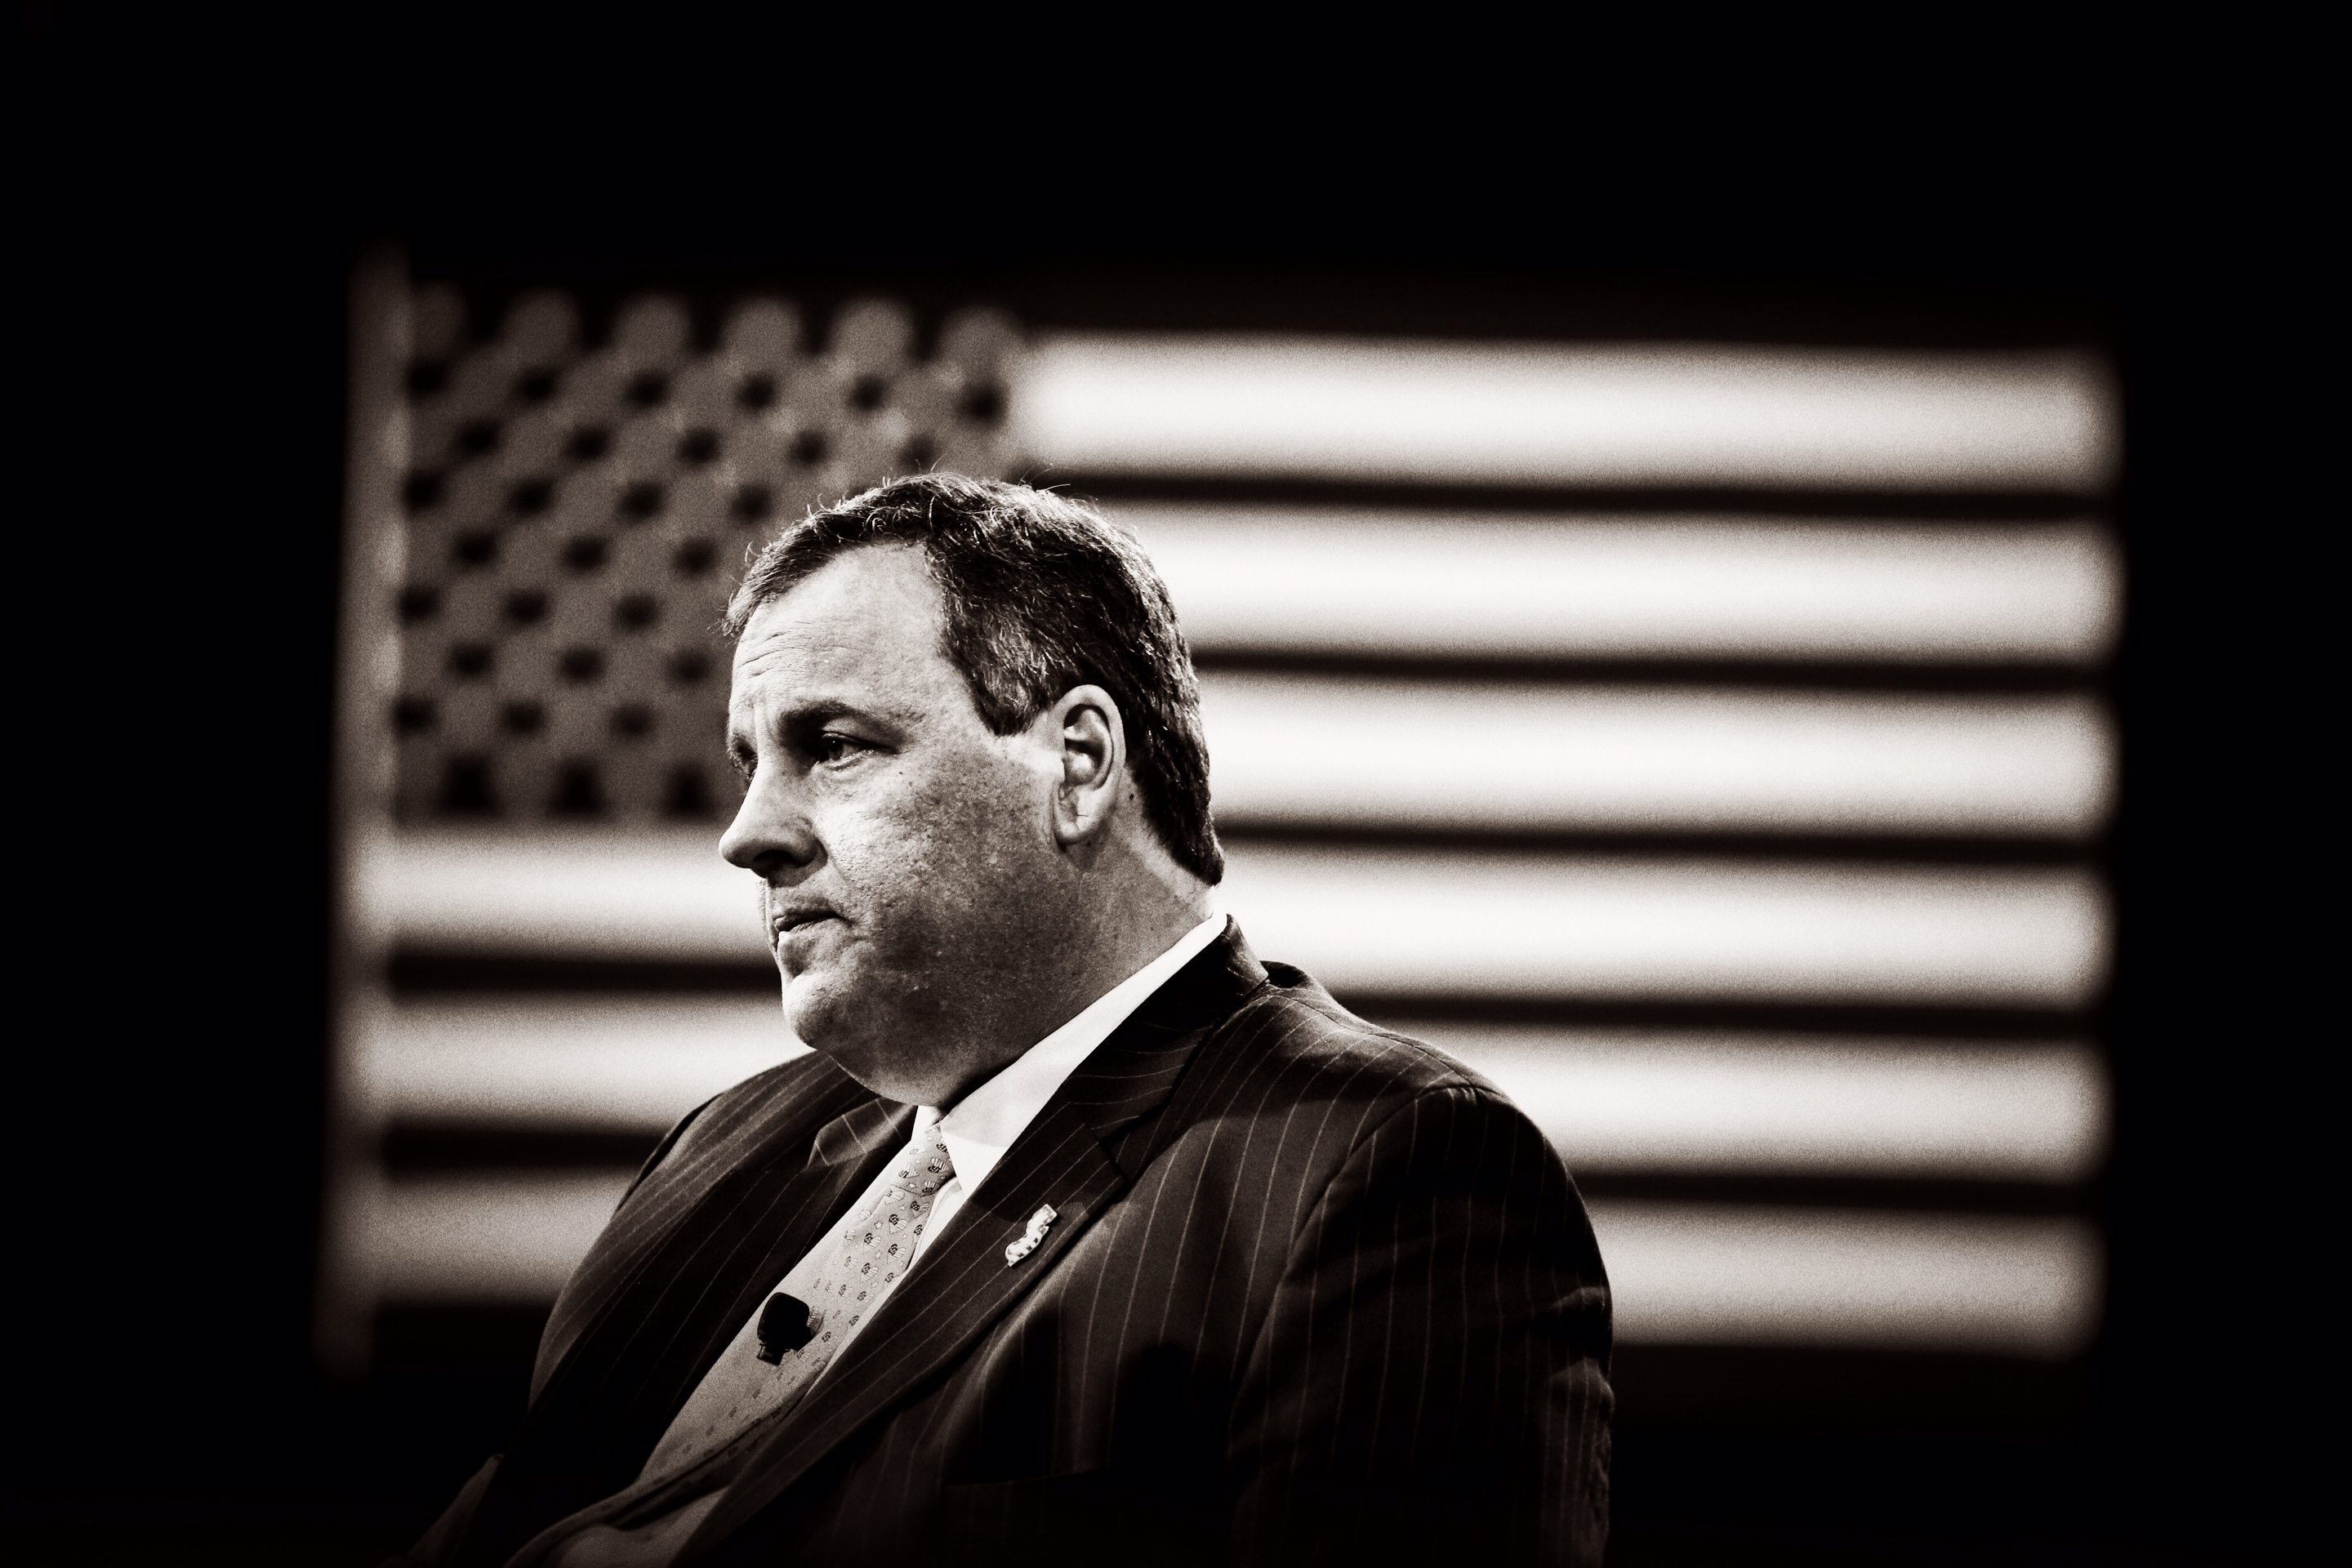 New Jersey governor Chris Christie on stage at CPAC in National Harbor, Md. on Feb. 26, 2015.